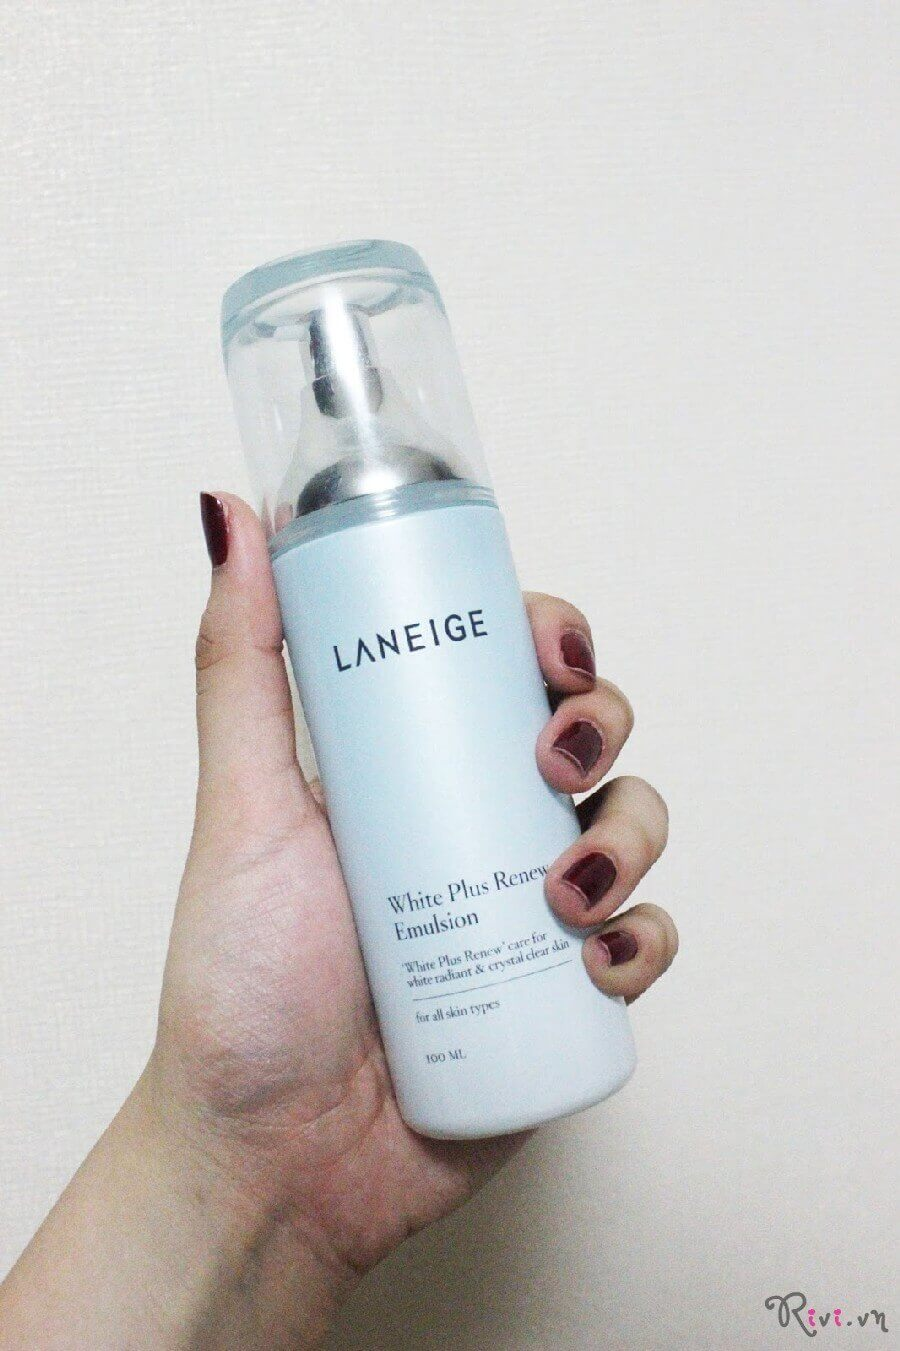 Sữa dưỡng trắng LANEIGE Skincare White Plus Renew Emulsion